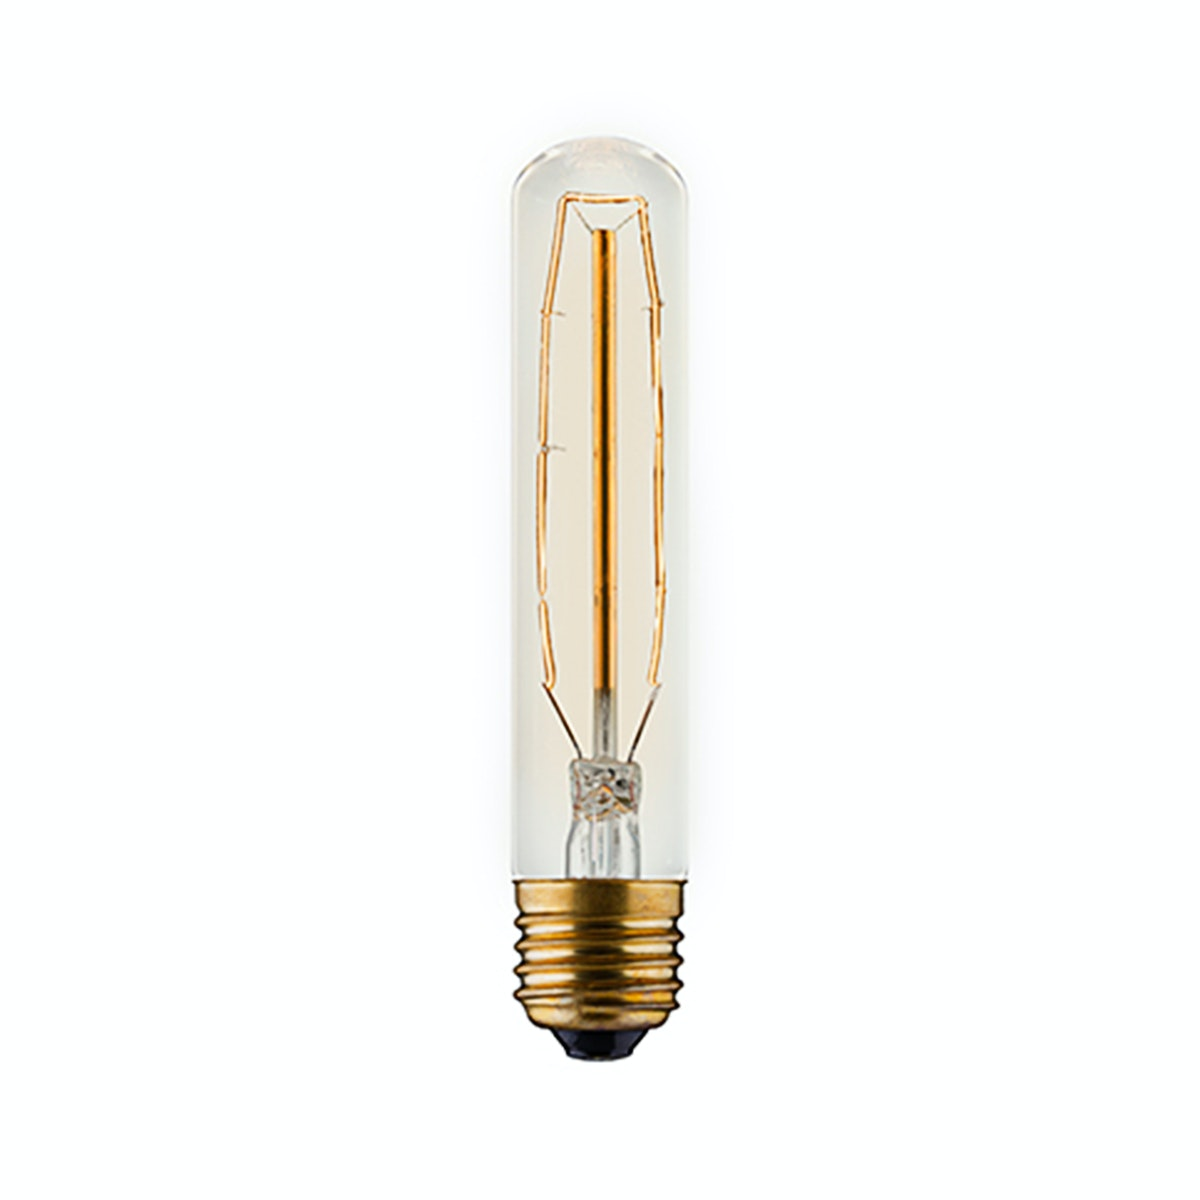 VIO The Bulb Bohlam Edison VE-13